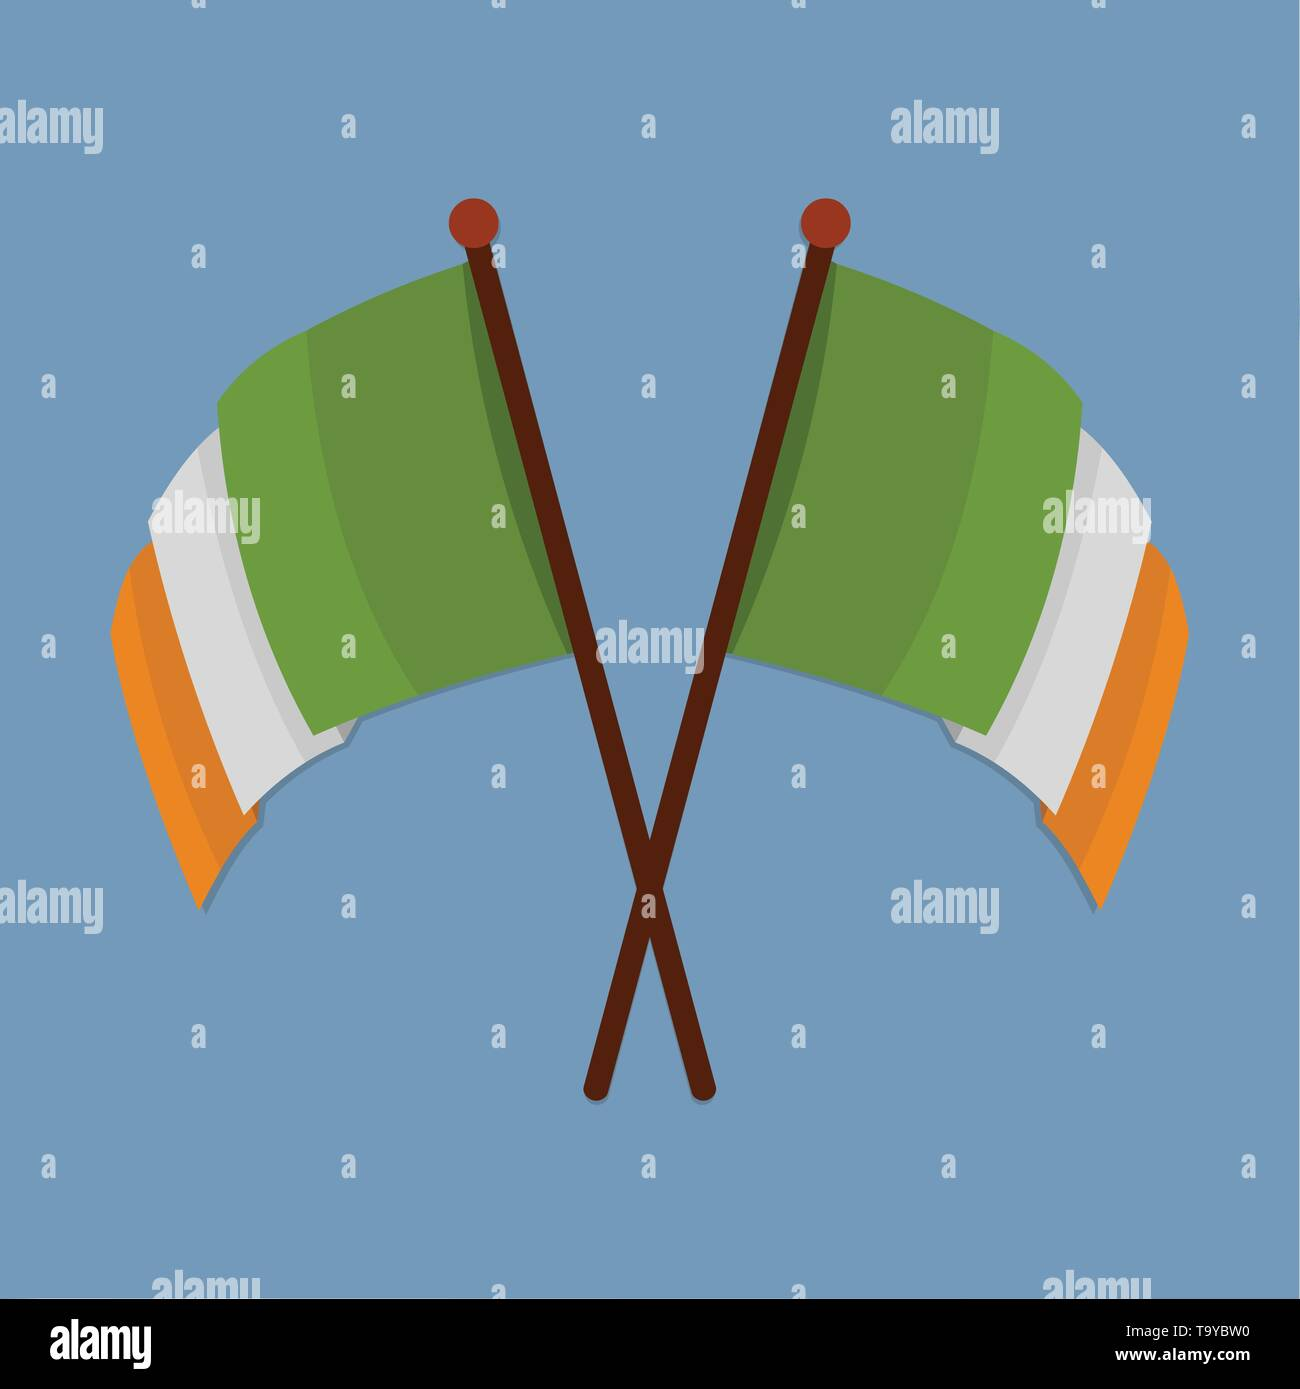 two ireland flags vector symbol illustration Stock Vector